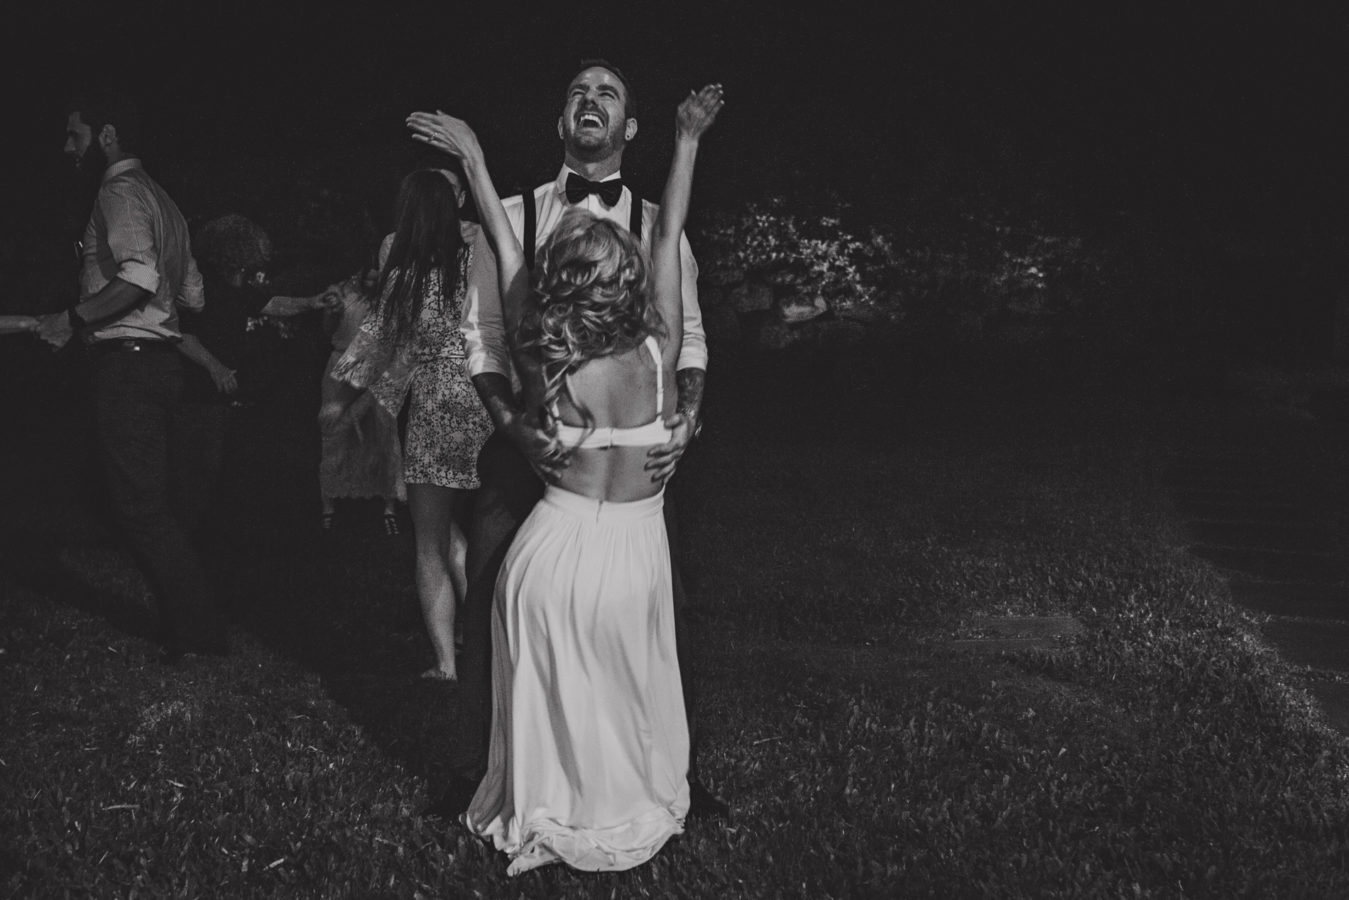 bride and groom dancing in a dark yard on their wedding day while he's throwing his head back laughing